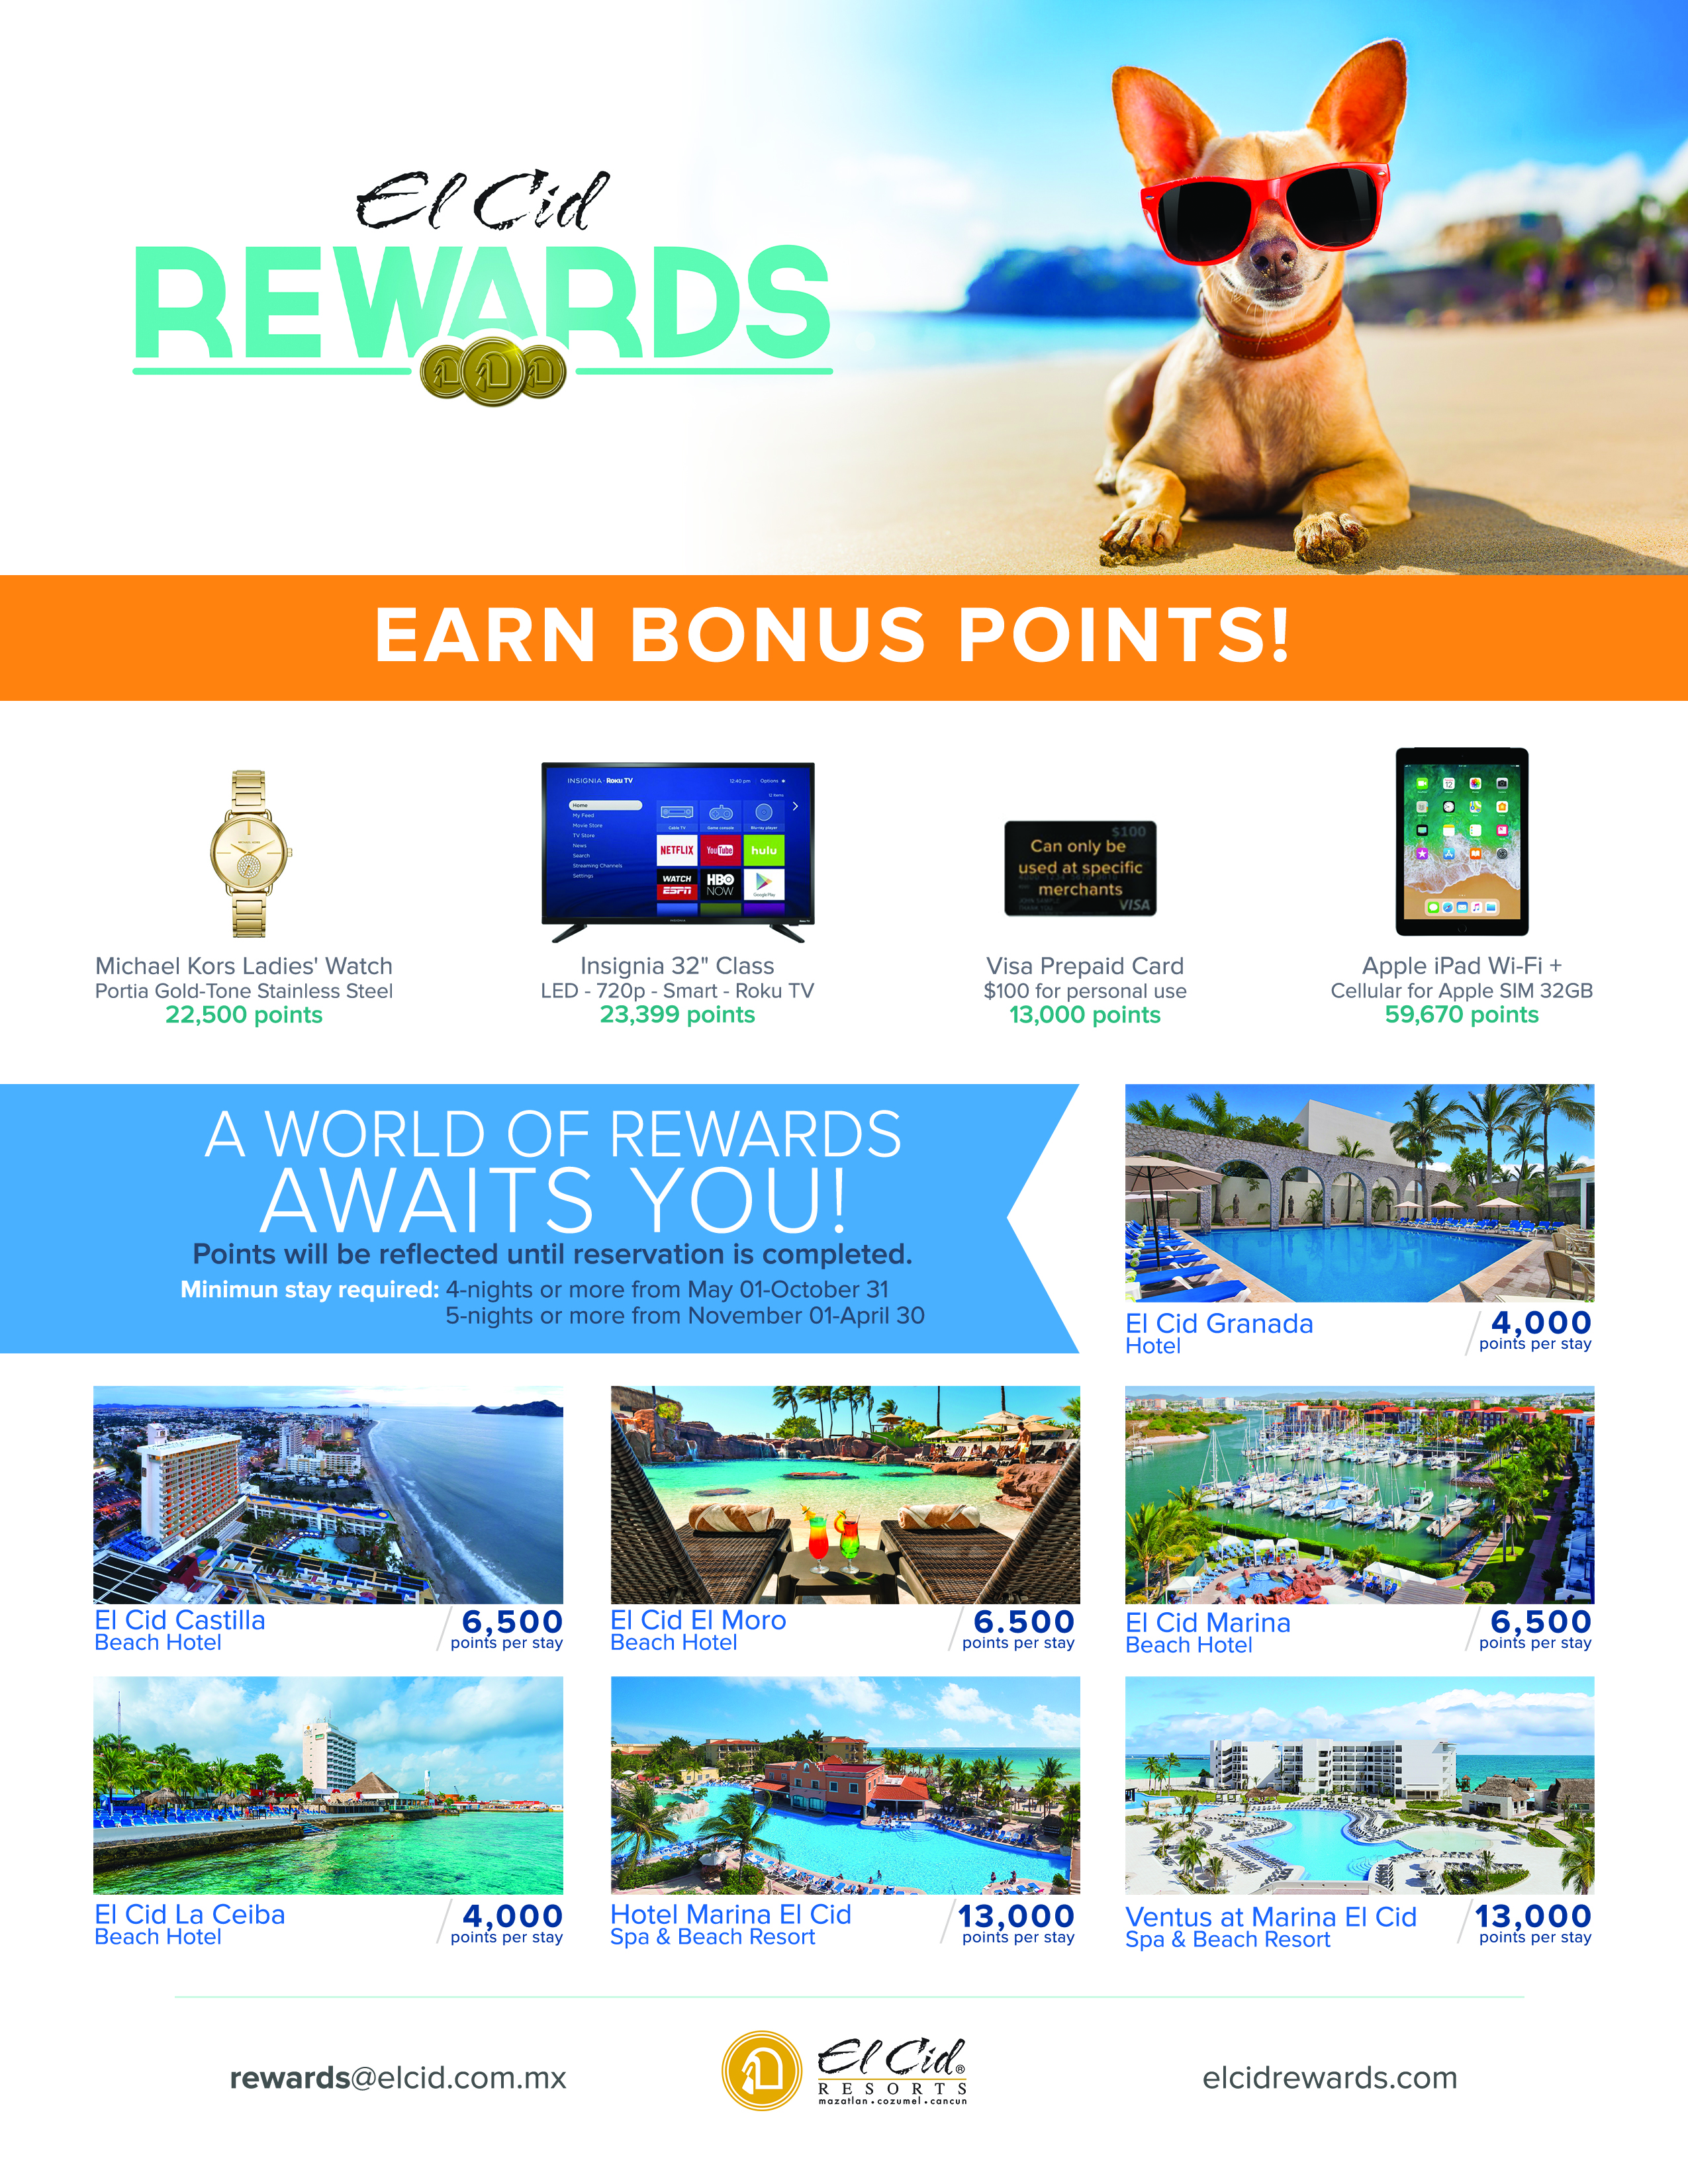 http://www.daemery.com/detm/promotions/ElCid/2020-04-30Earn-Bonus-Points-El%20Cid-Rewards.jpg